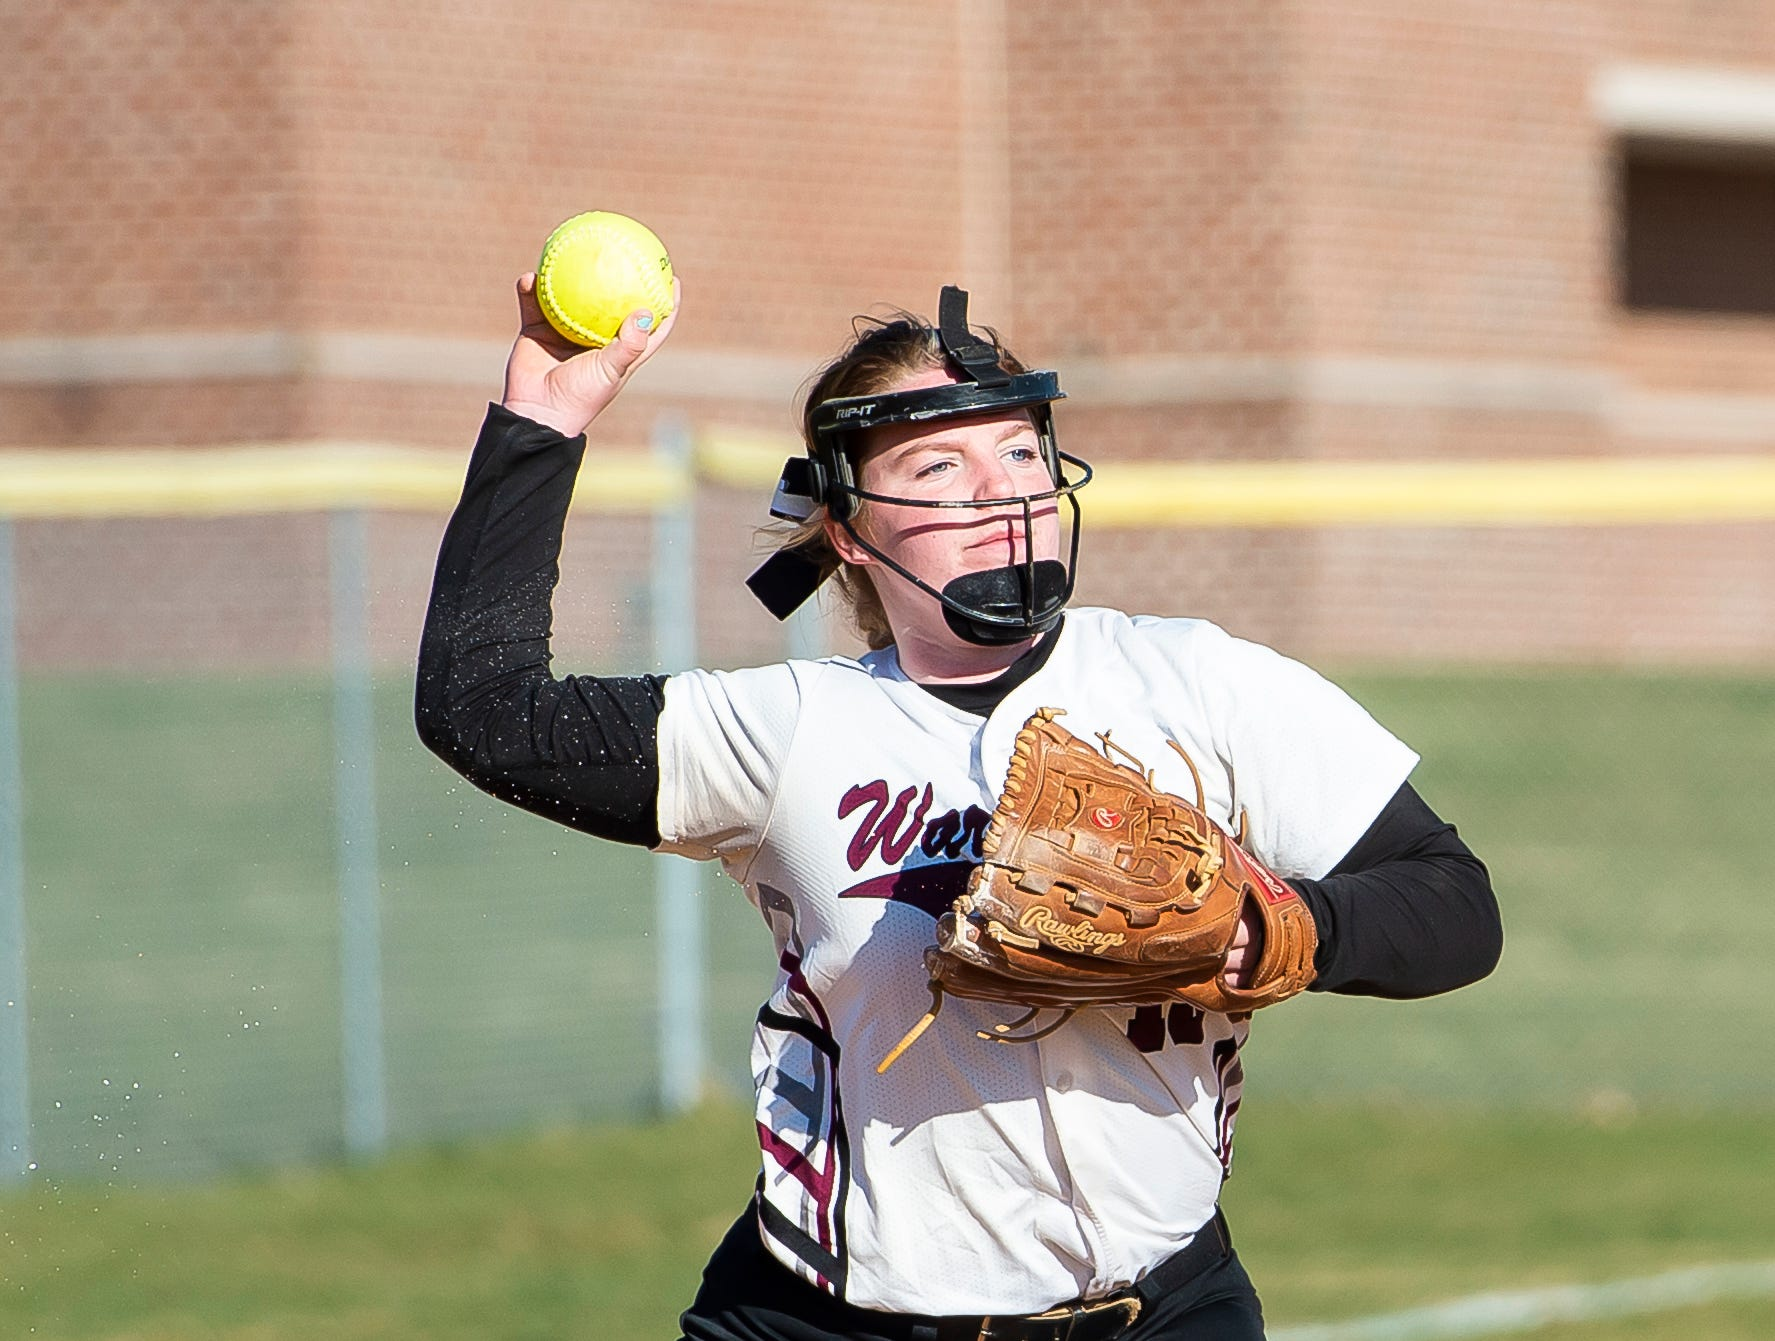 Gettysburg Faith Boone throws the ball to first on a ground ball hit back to the mound during a YAIAA softball game against Littlestown on Monday, April 1, 2019. The Bolts won 10-4.